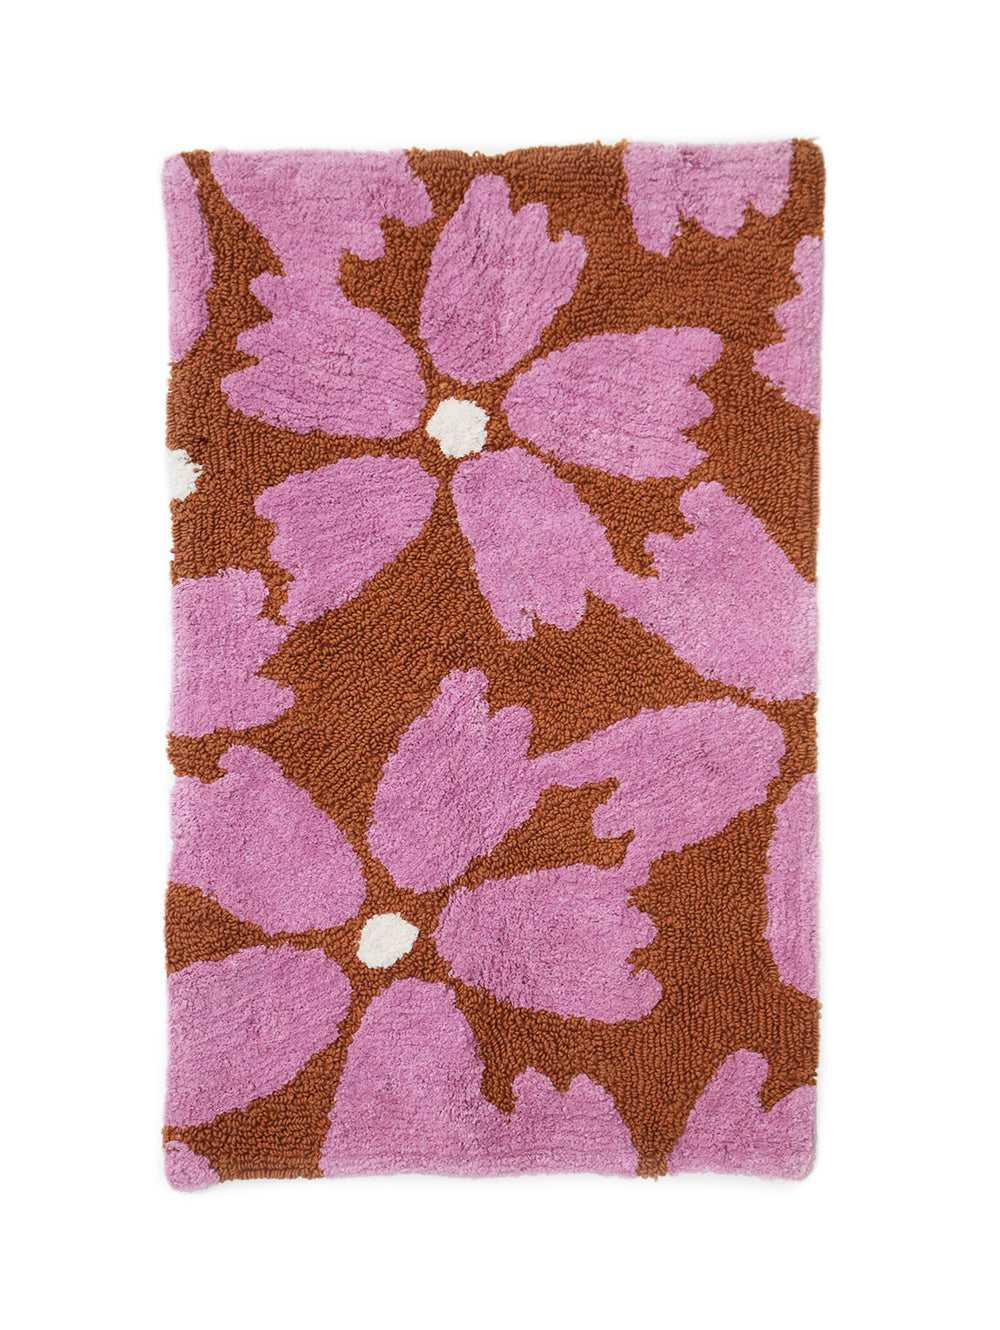 Flower Bath Mat in Rust  by Mosey Me